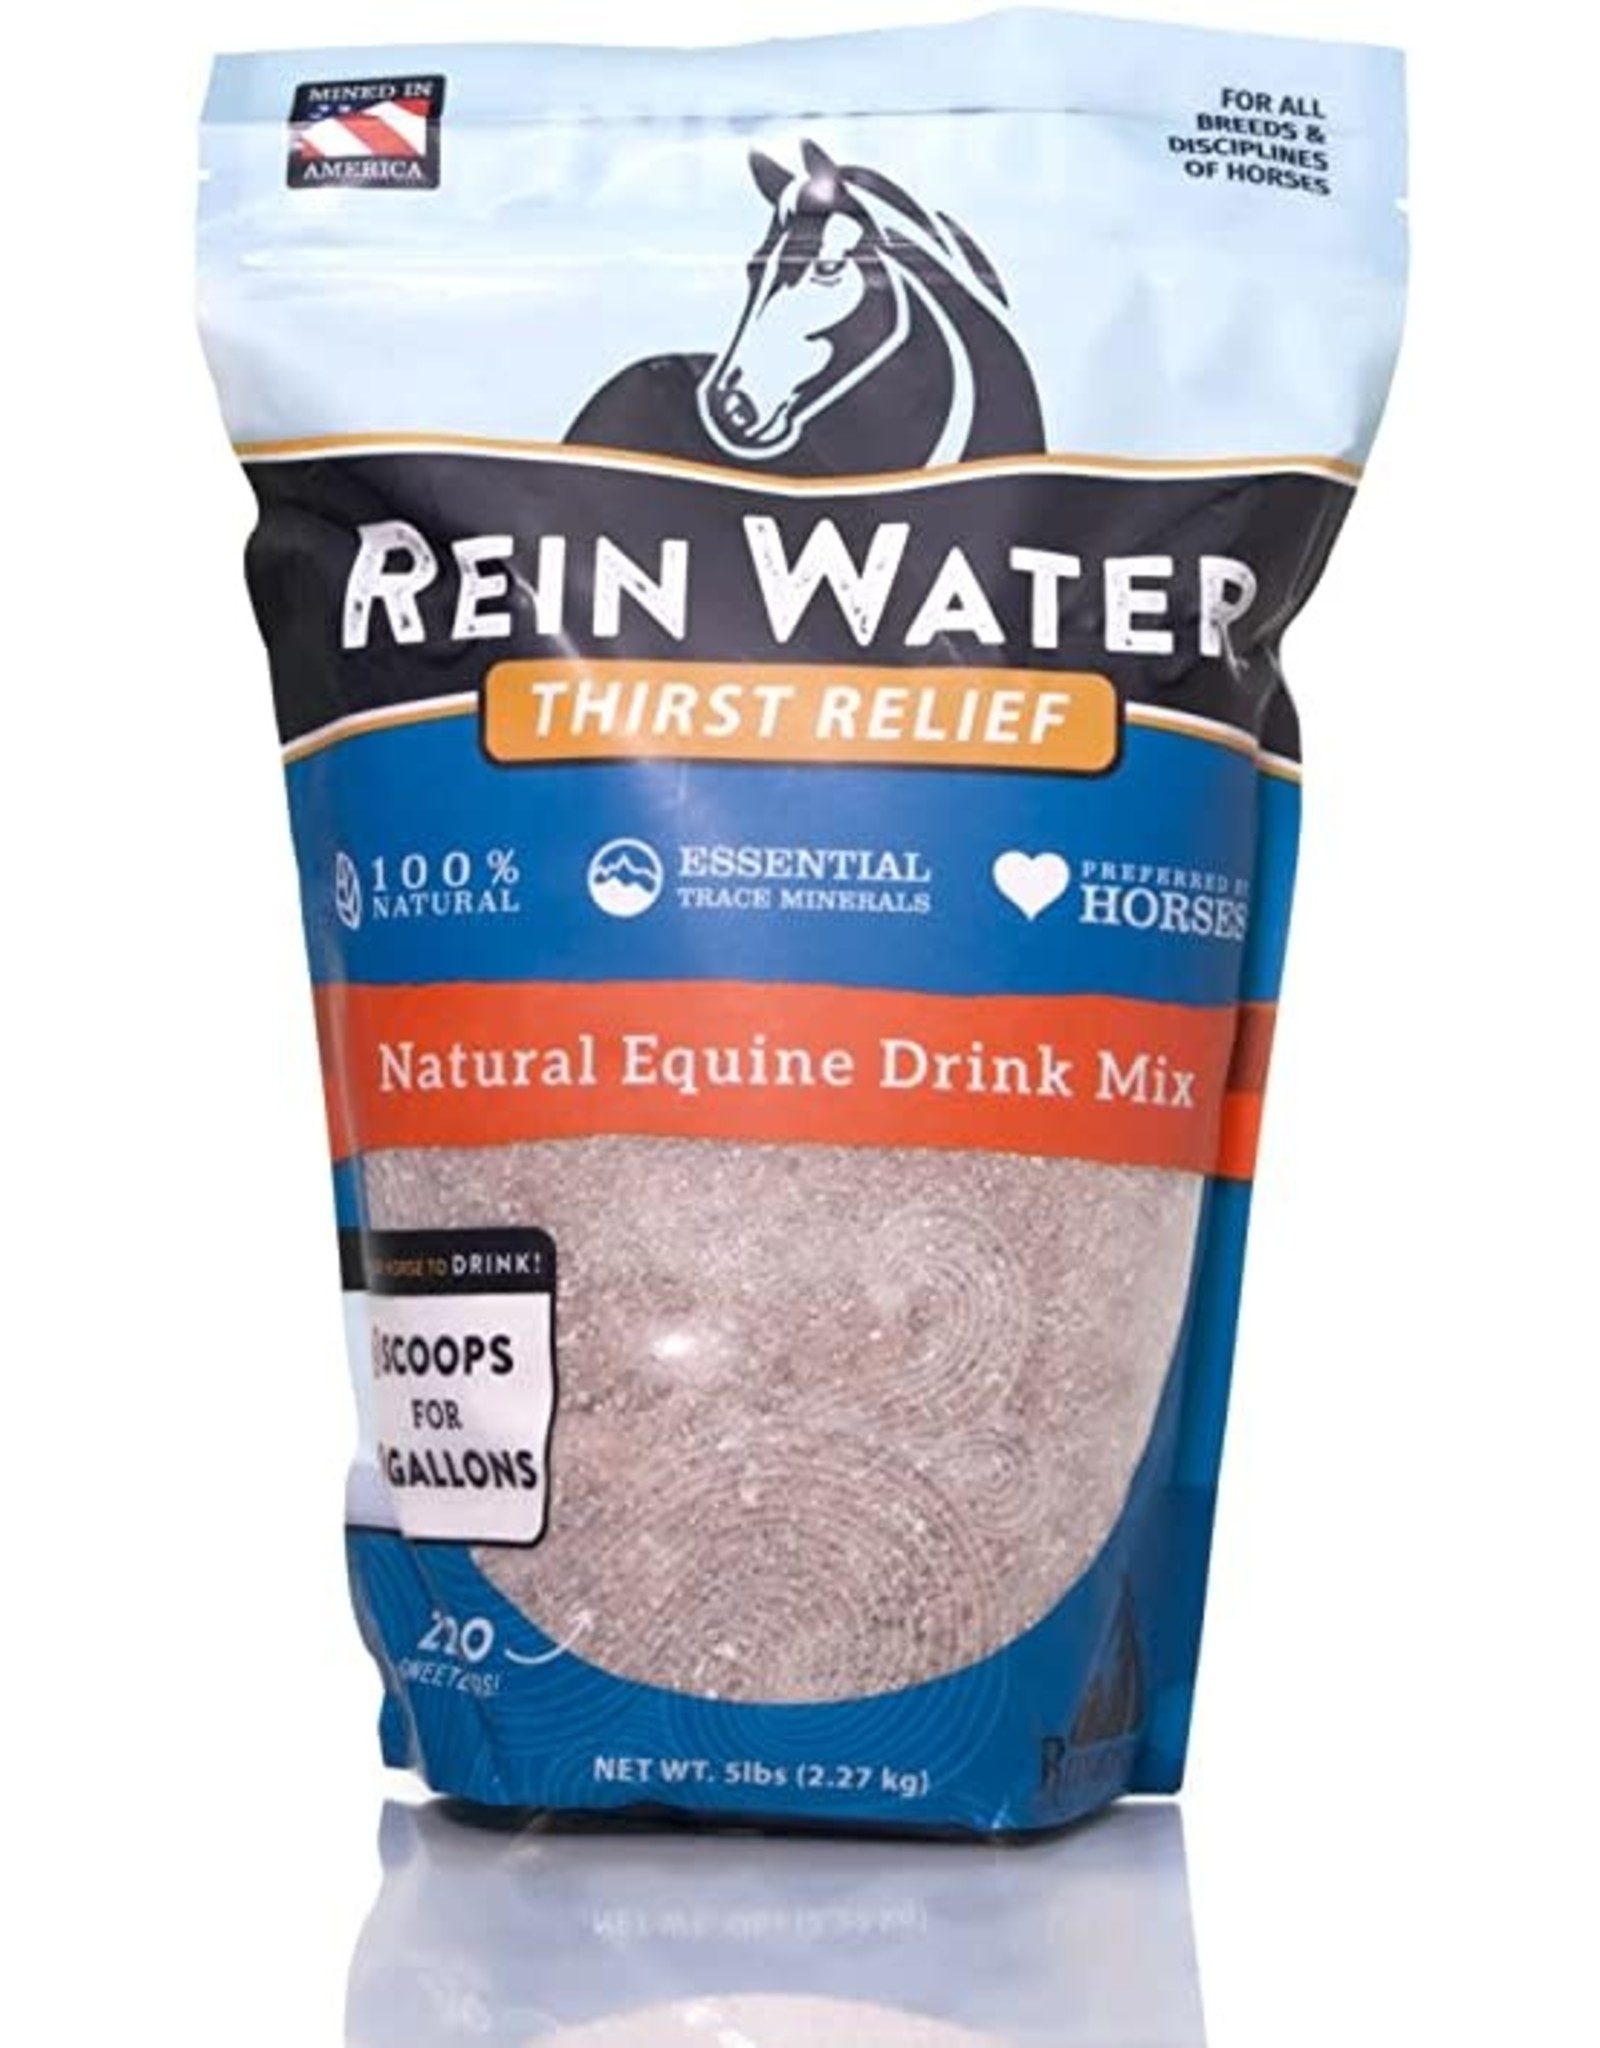 Rein water thirst relief 5lb